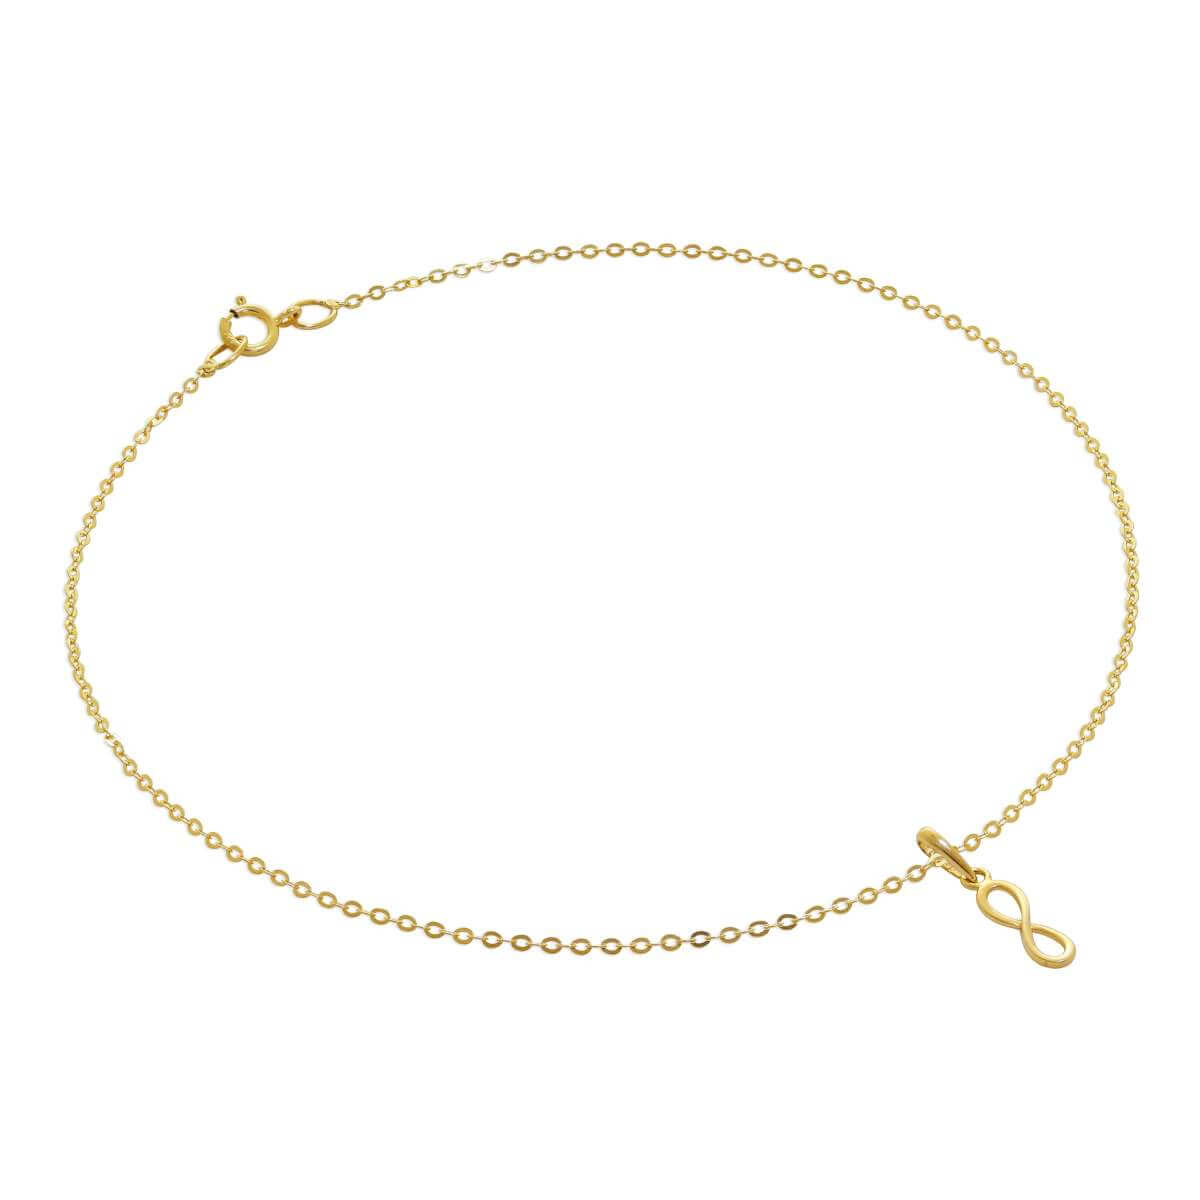 9ct Gold Hammered Trace Anklet with Infinity Charm - 9.5 Inches